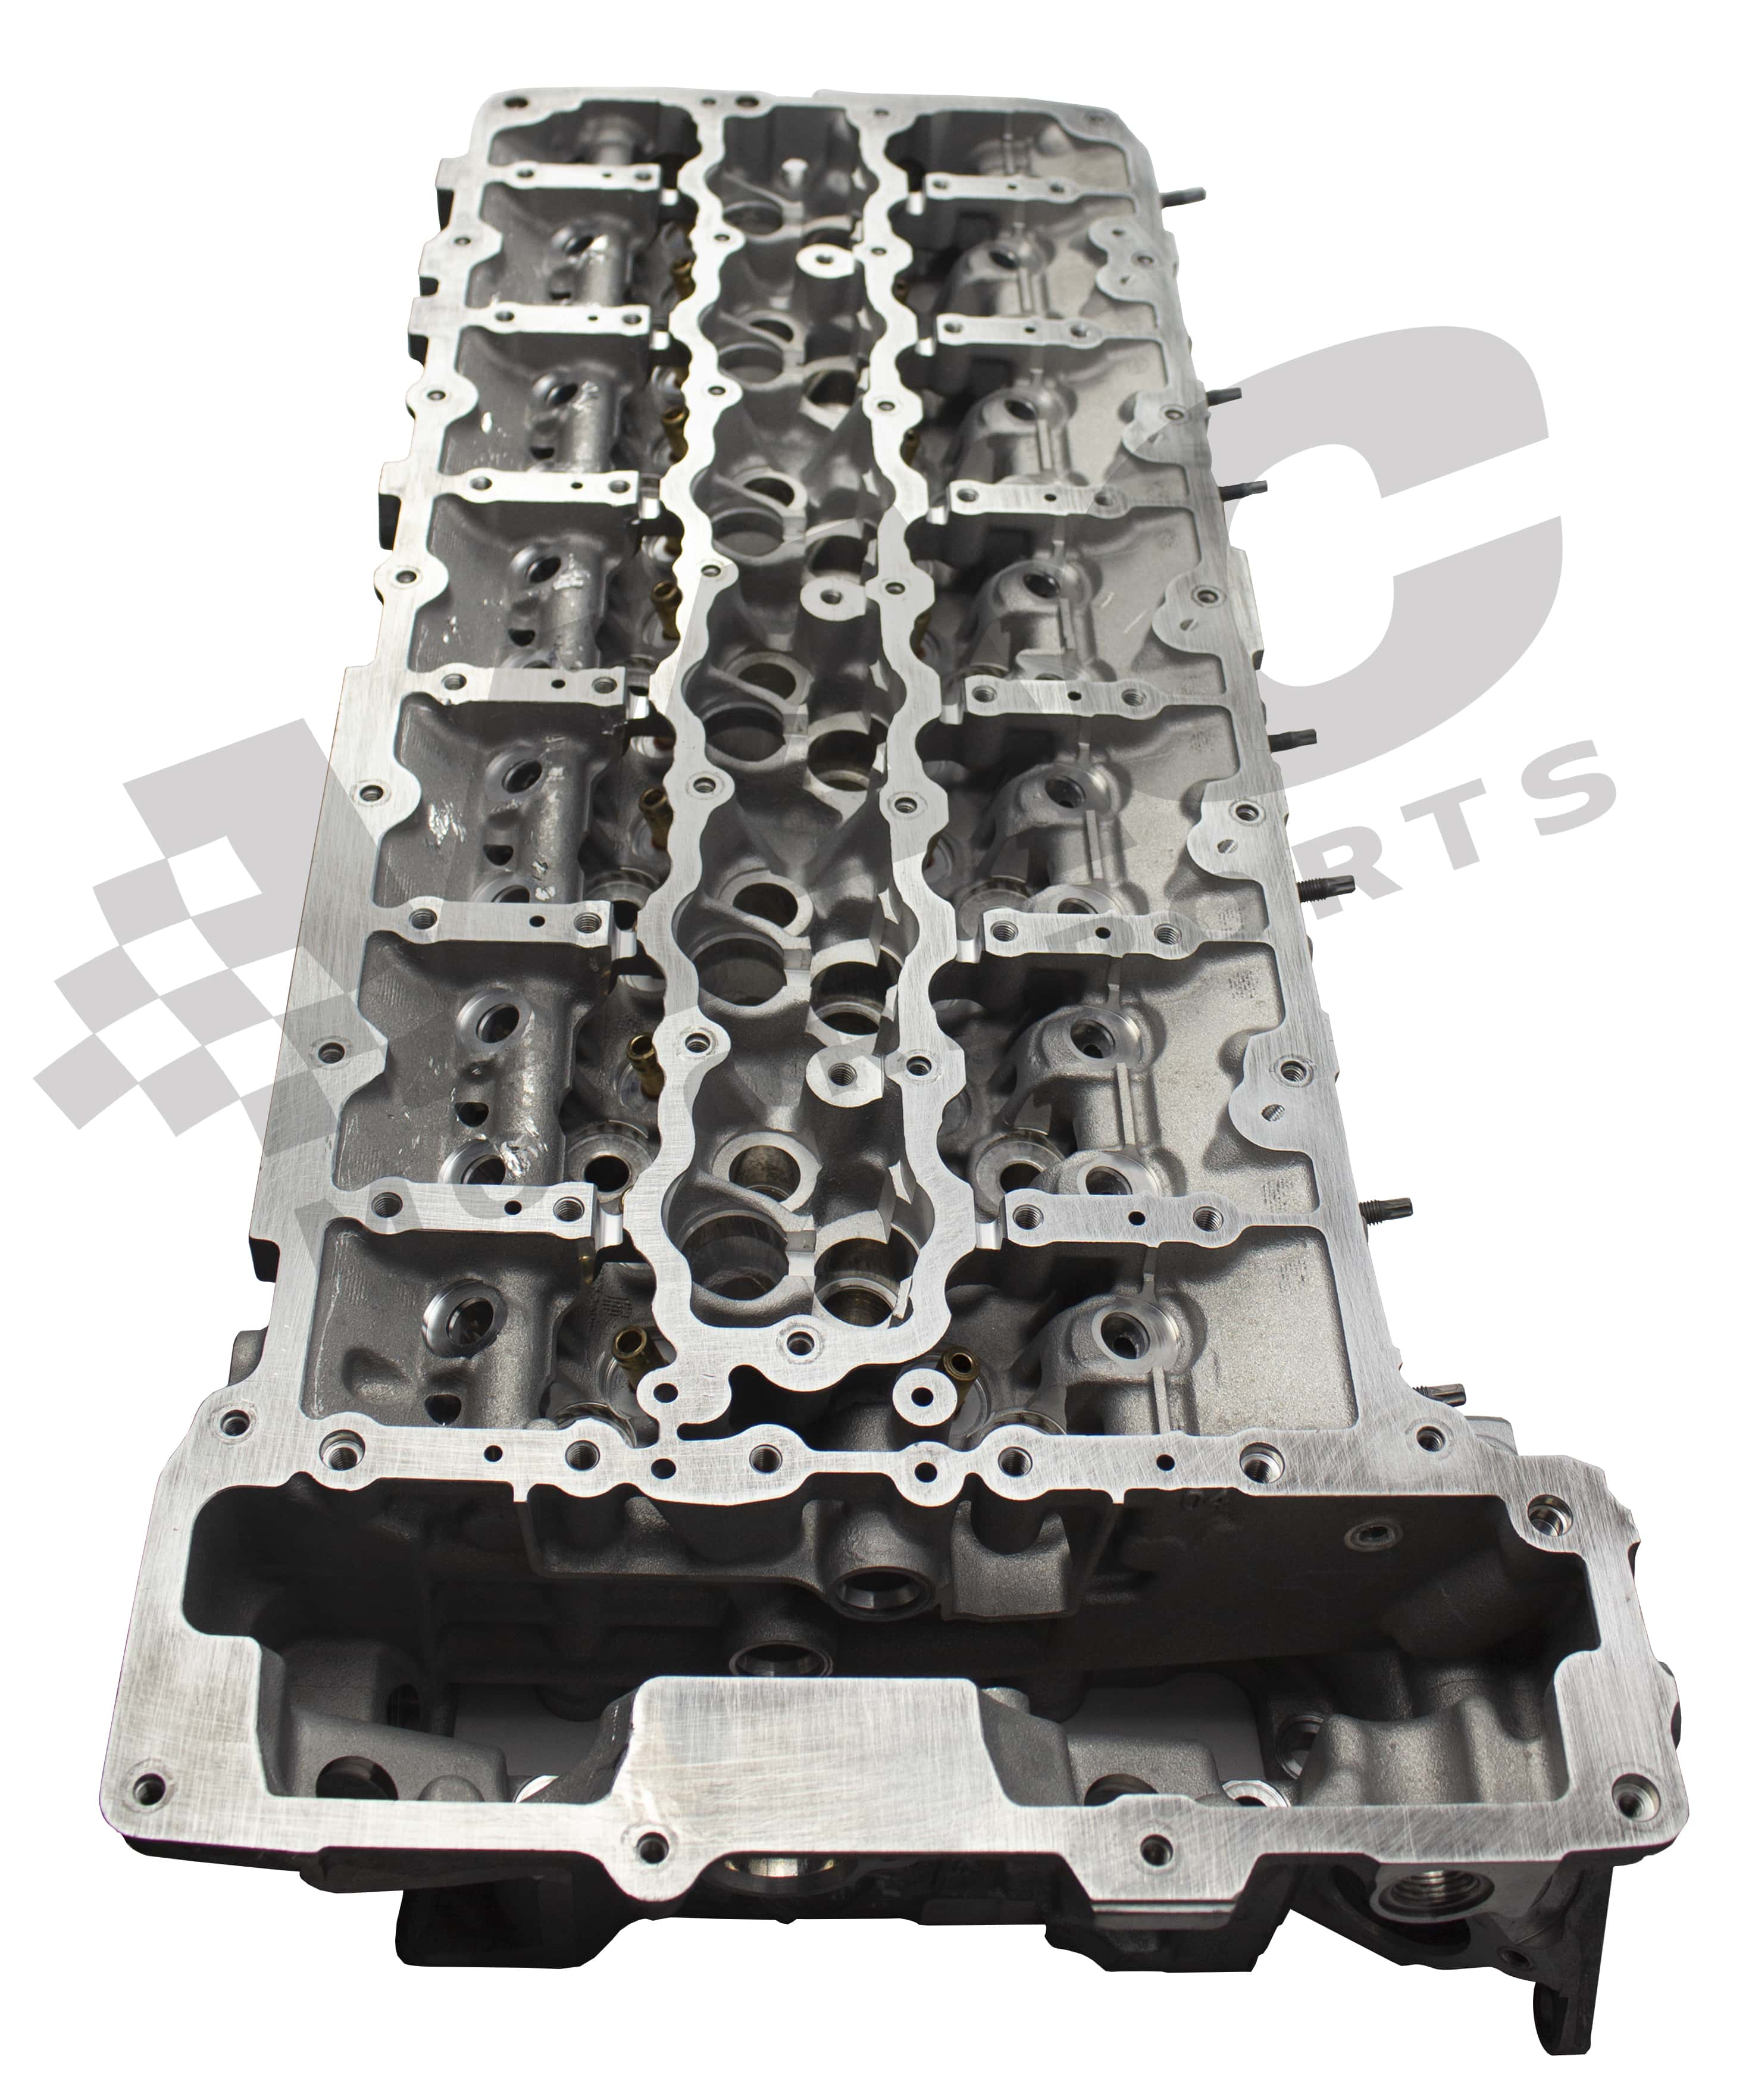 VAC - N54 Stage 1 Performance Cylinder Head MAIN